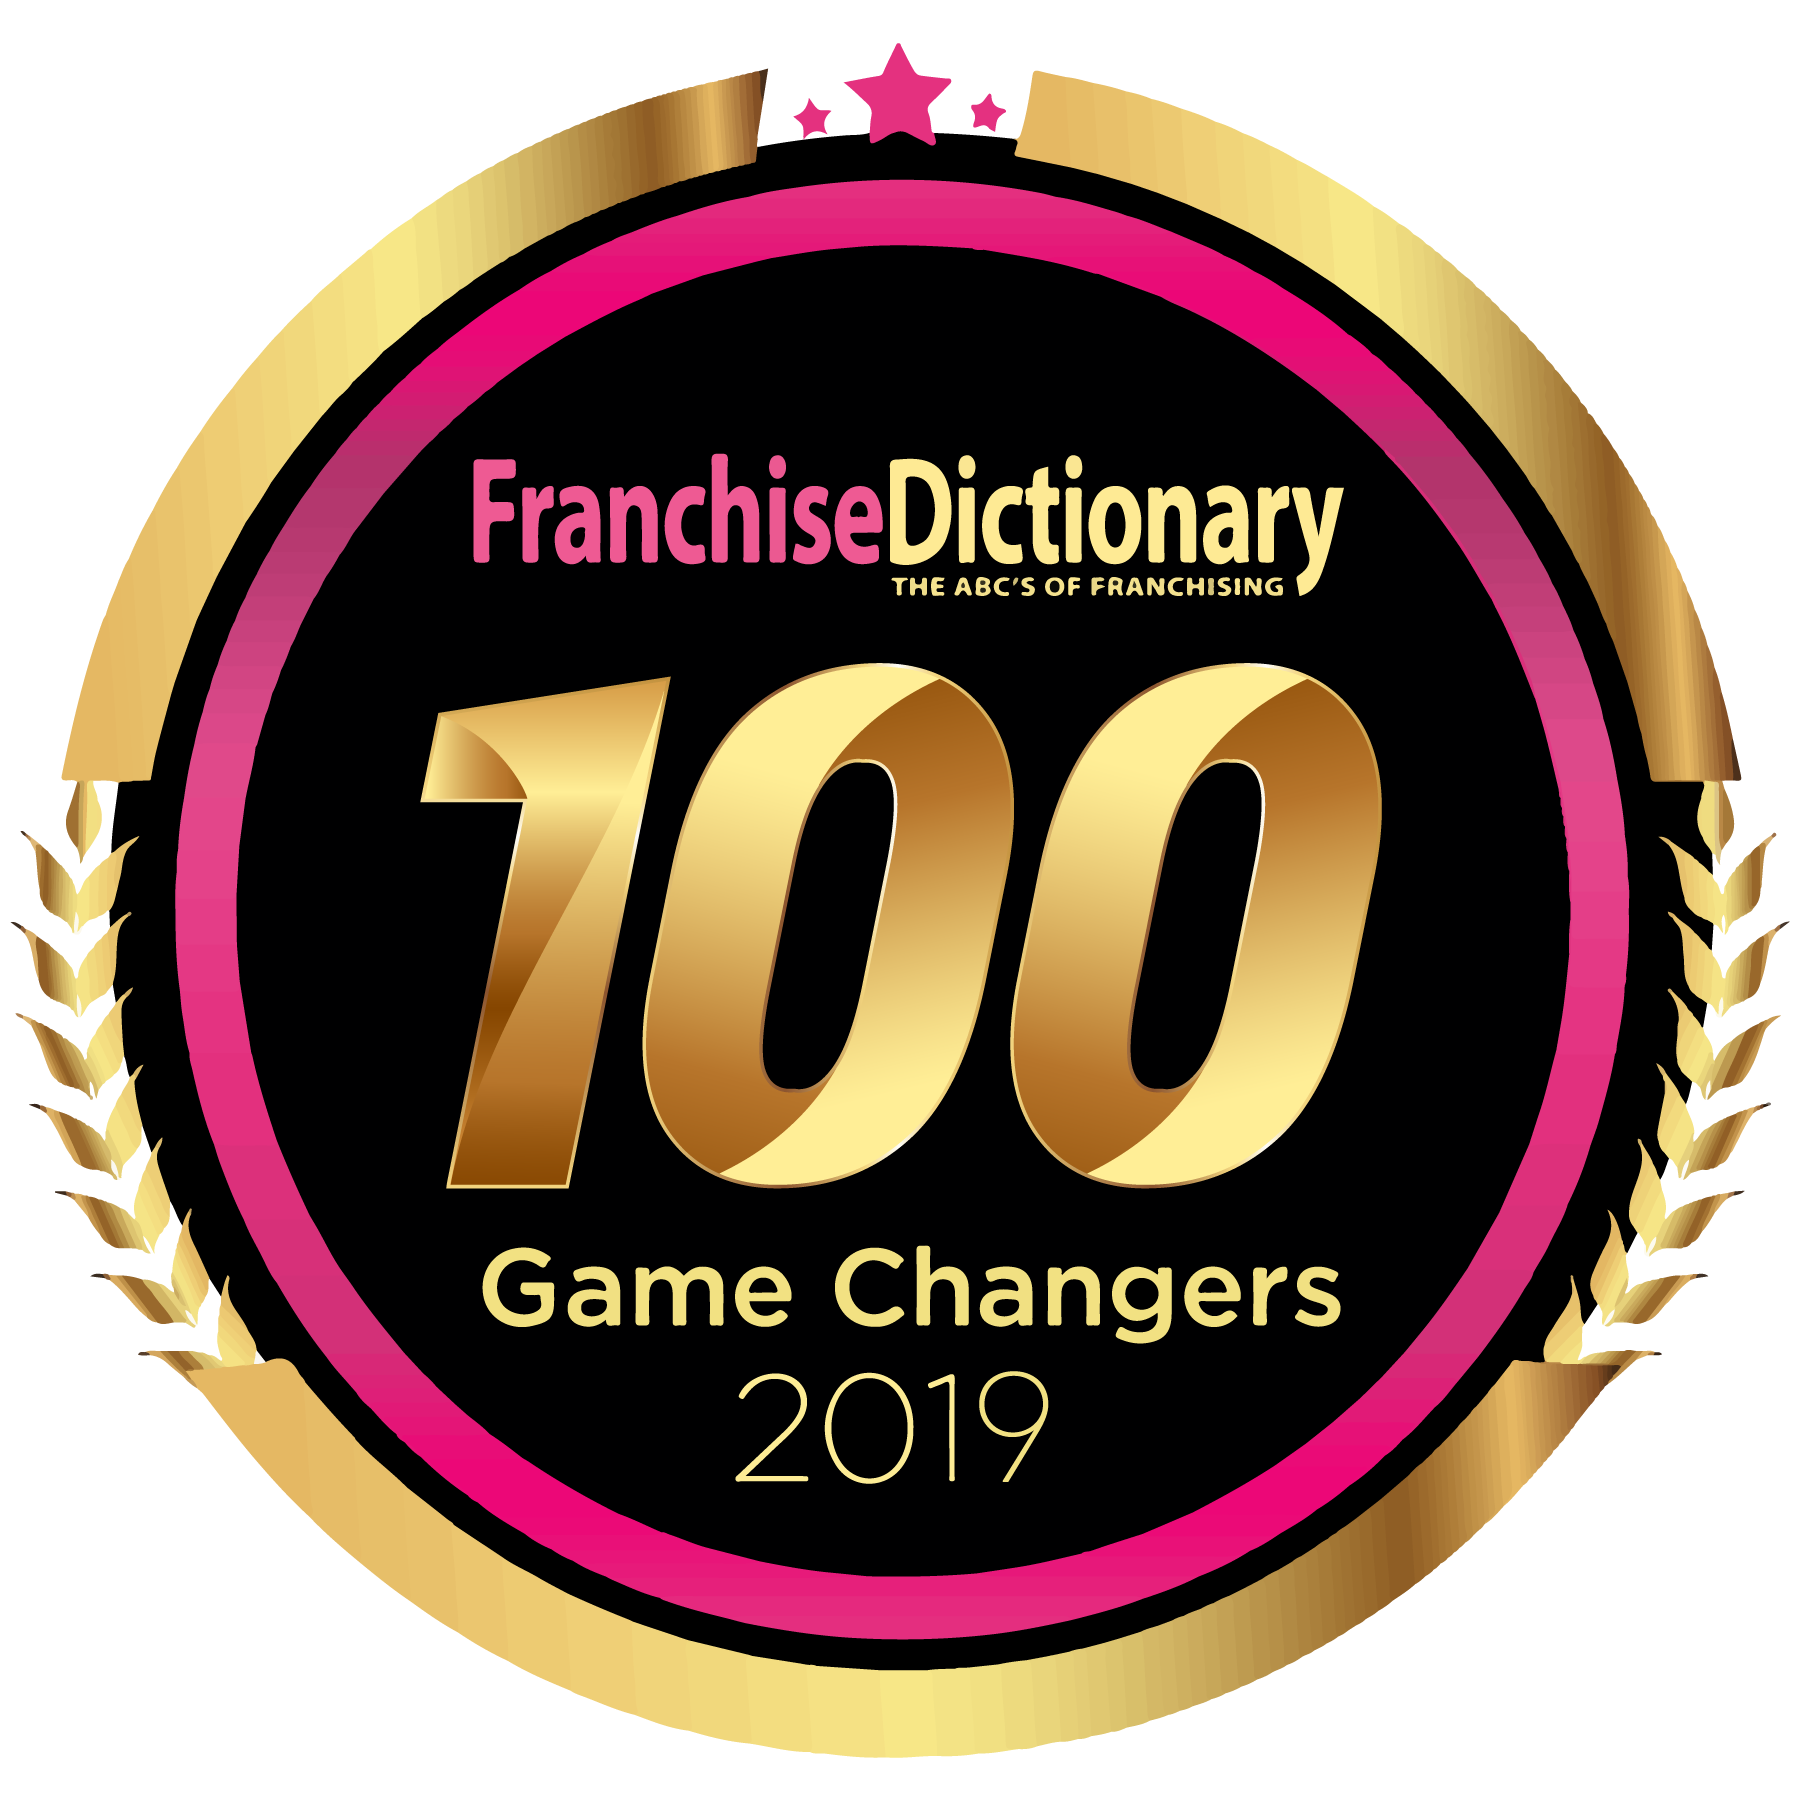 Franchise Dictionary Top 100 Game Changers